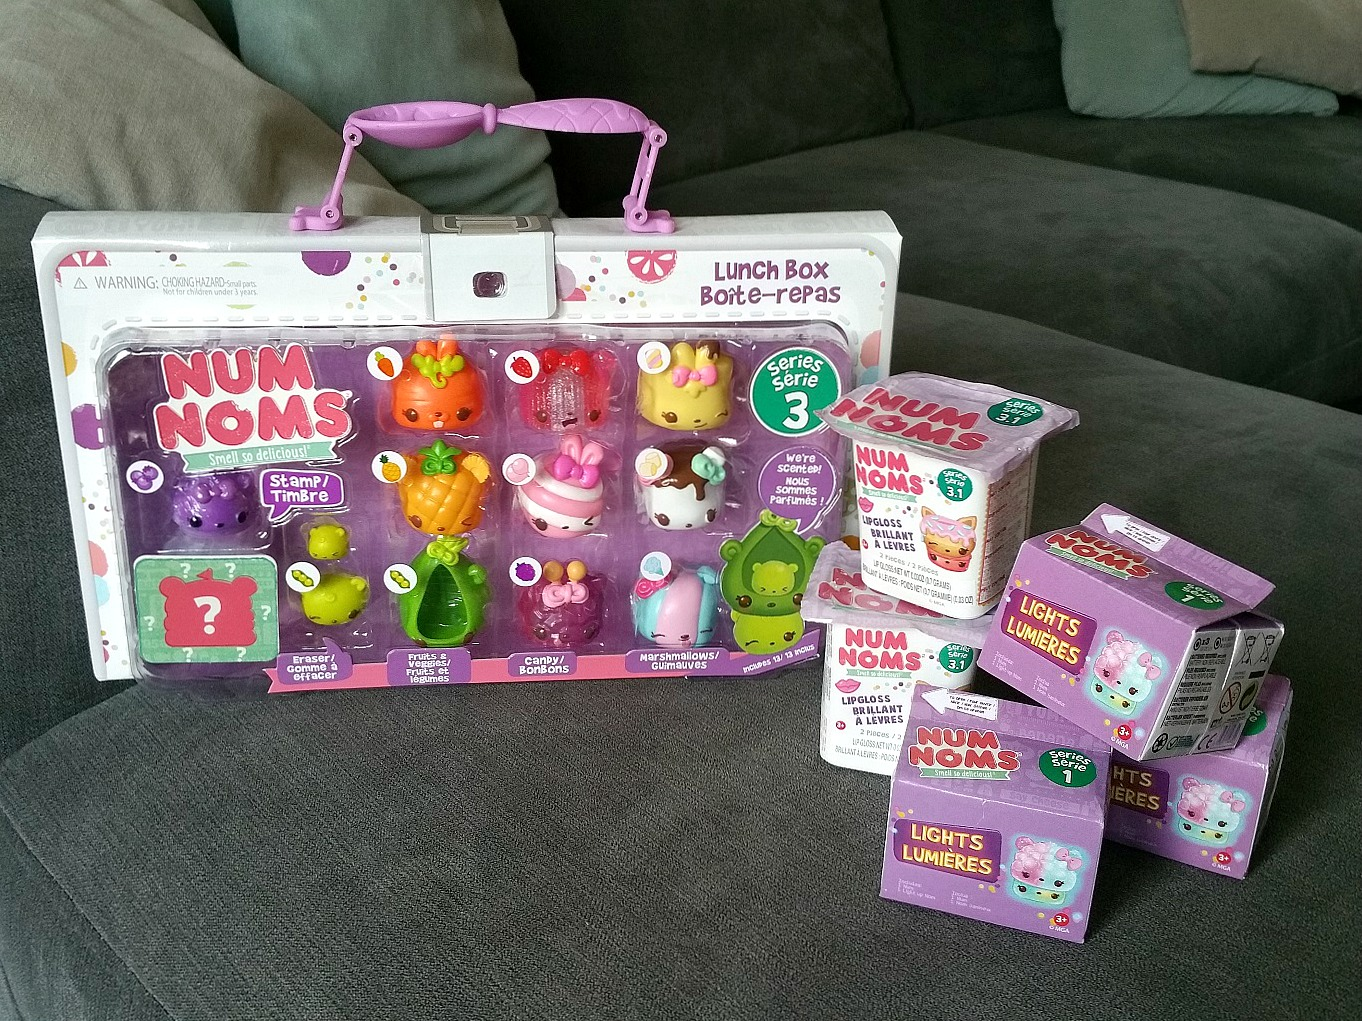 Num Noms Series 3, Num Noms Lights Series 1, Collectible scented toys